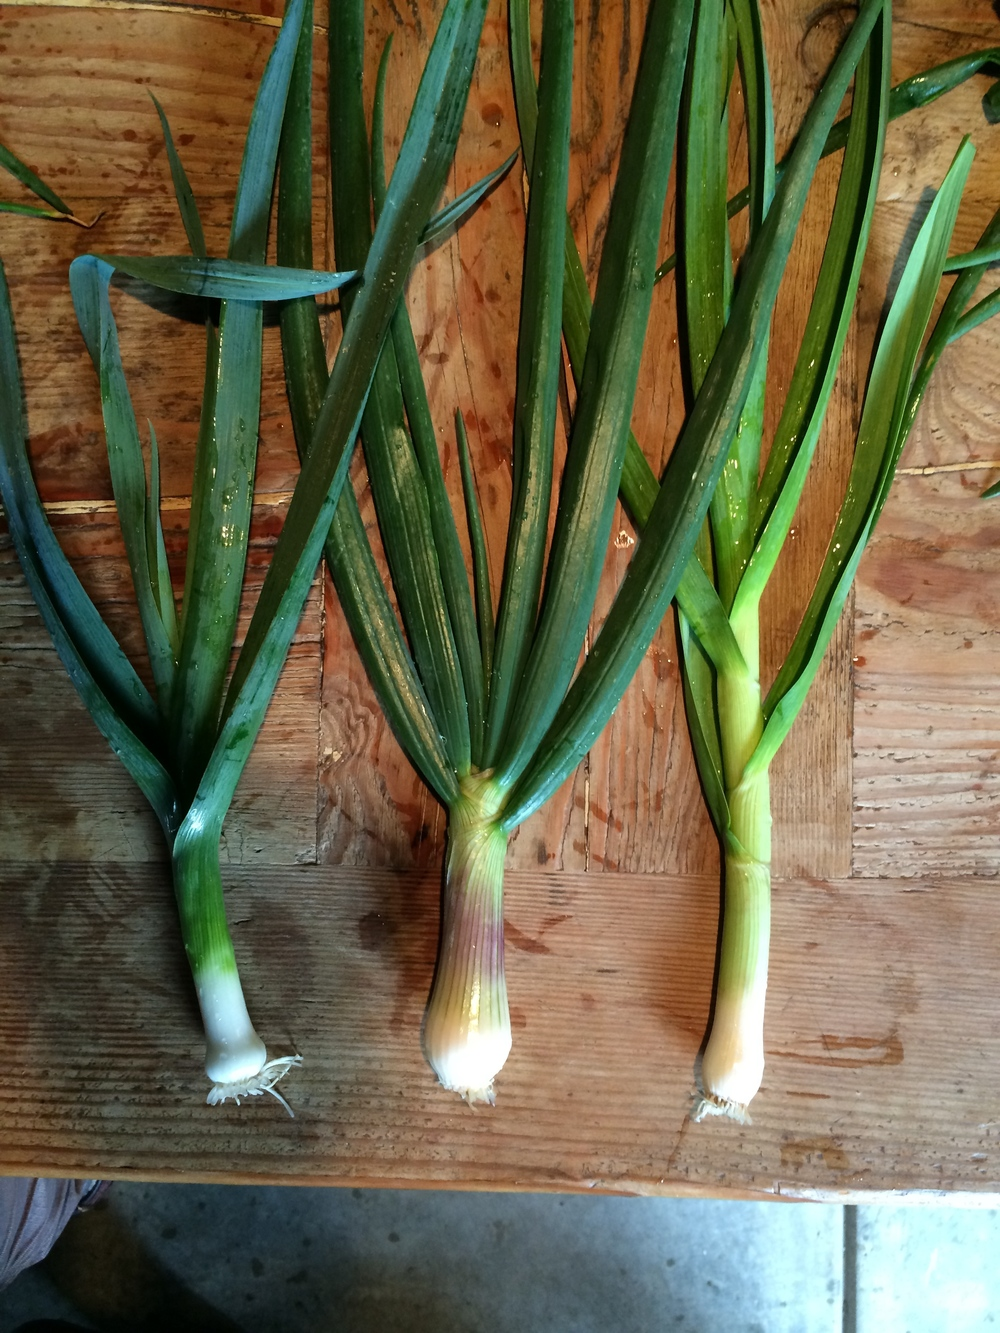 The leek has a deep flat blue/green leaf, the onion has a hint of pink and the green garlic looks similar to the leek but has the pungent bouquet of garlic we all know and love.